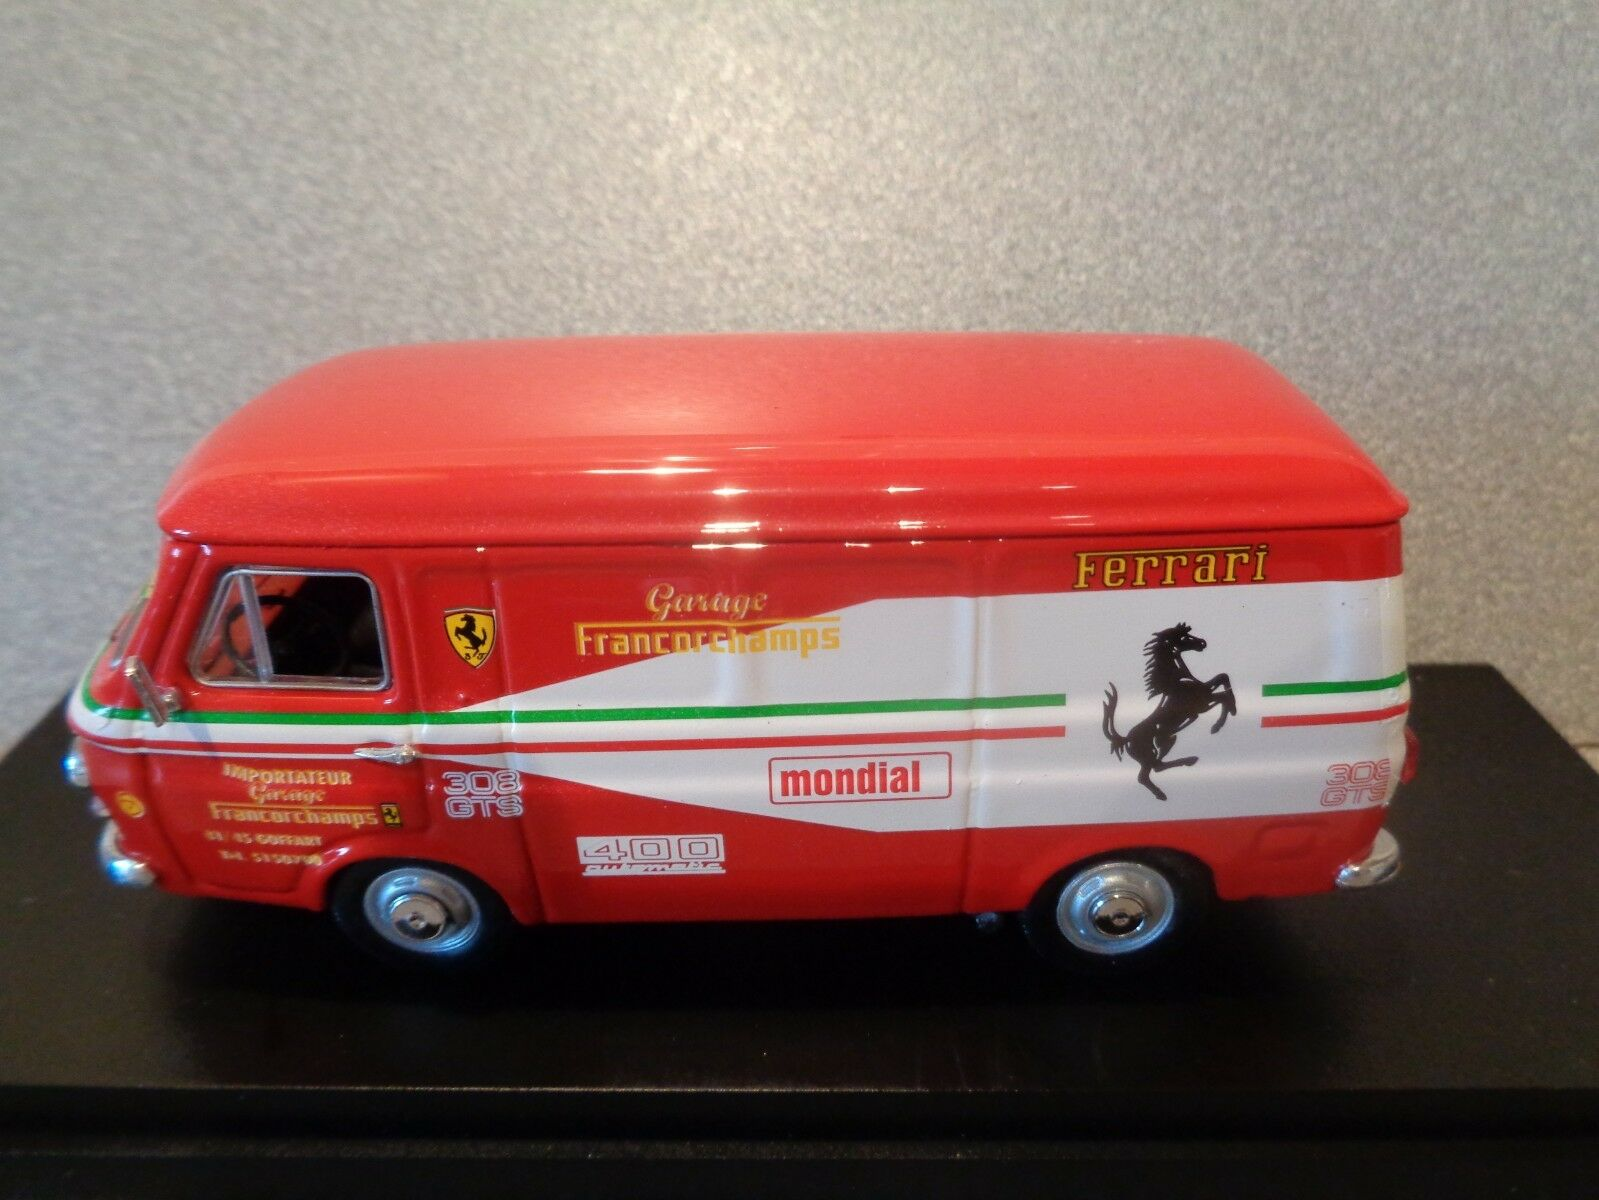 RIO 4242 1 43  1972 FIAT 238 GARAGE FRANCORCHAMPS  ..mint n boxed